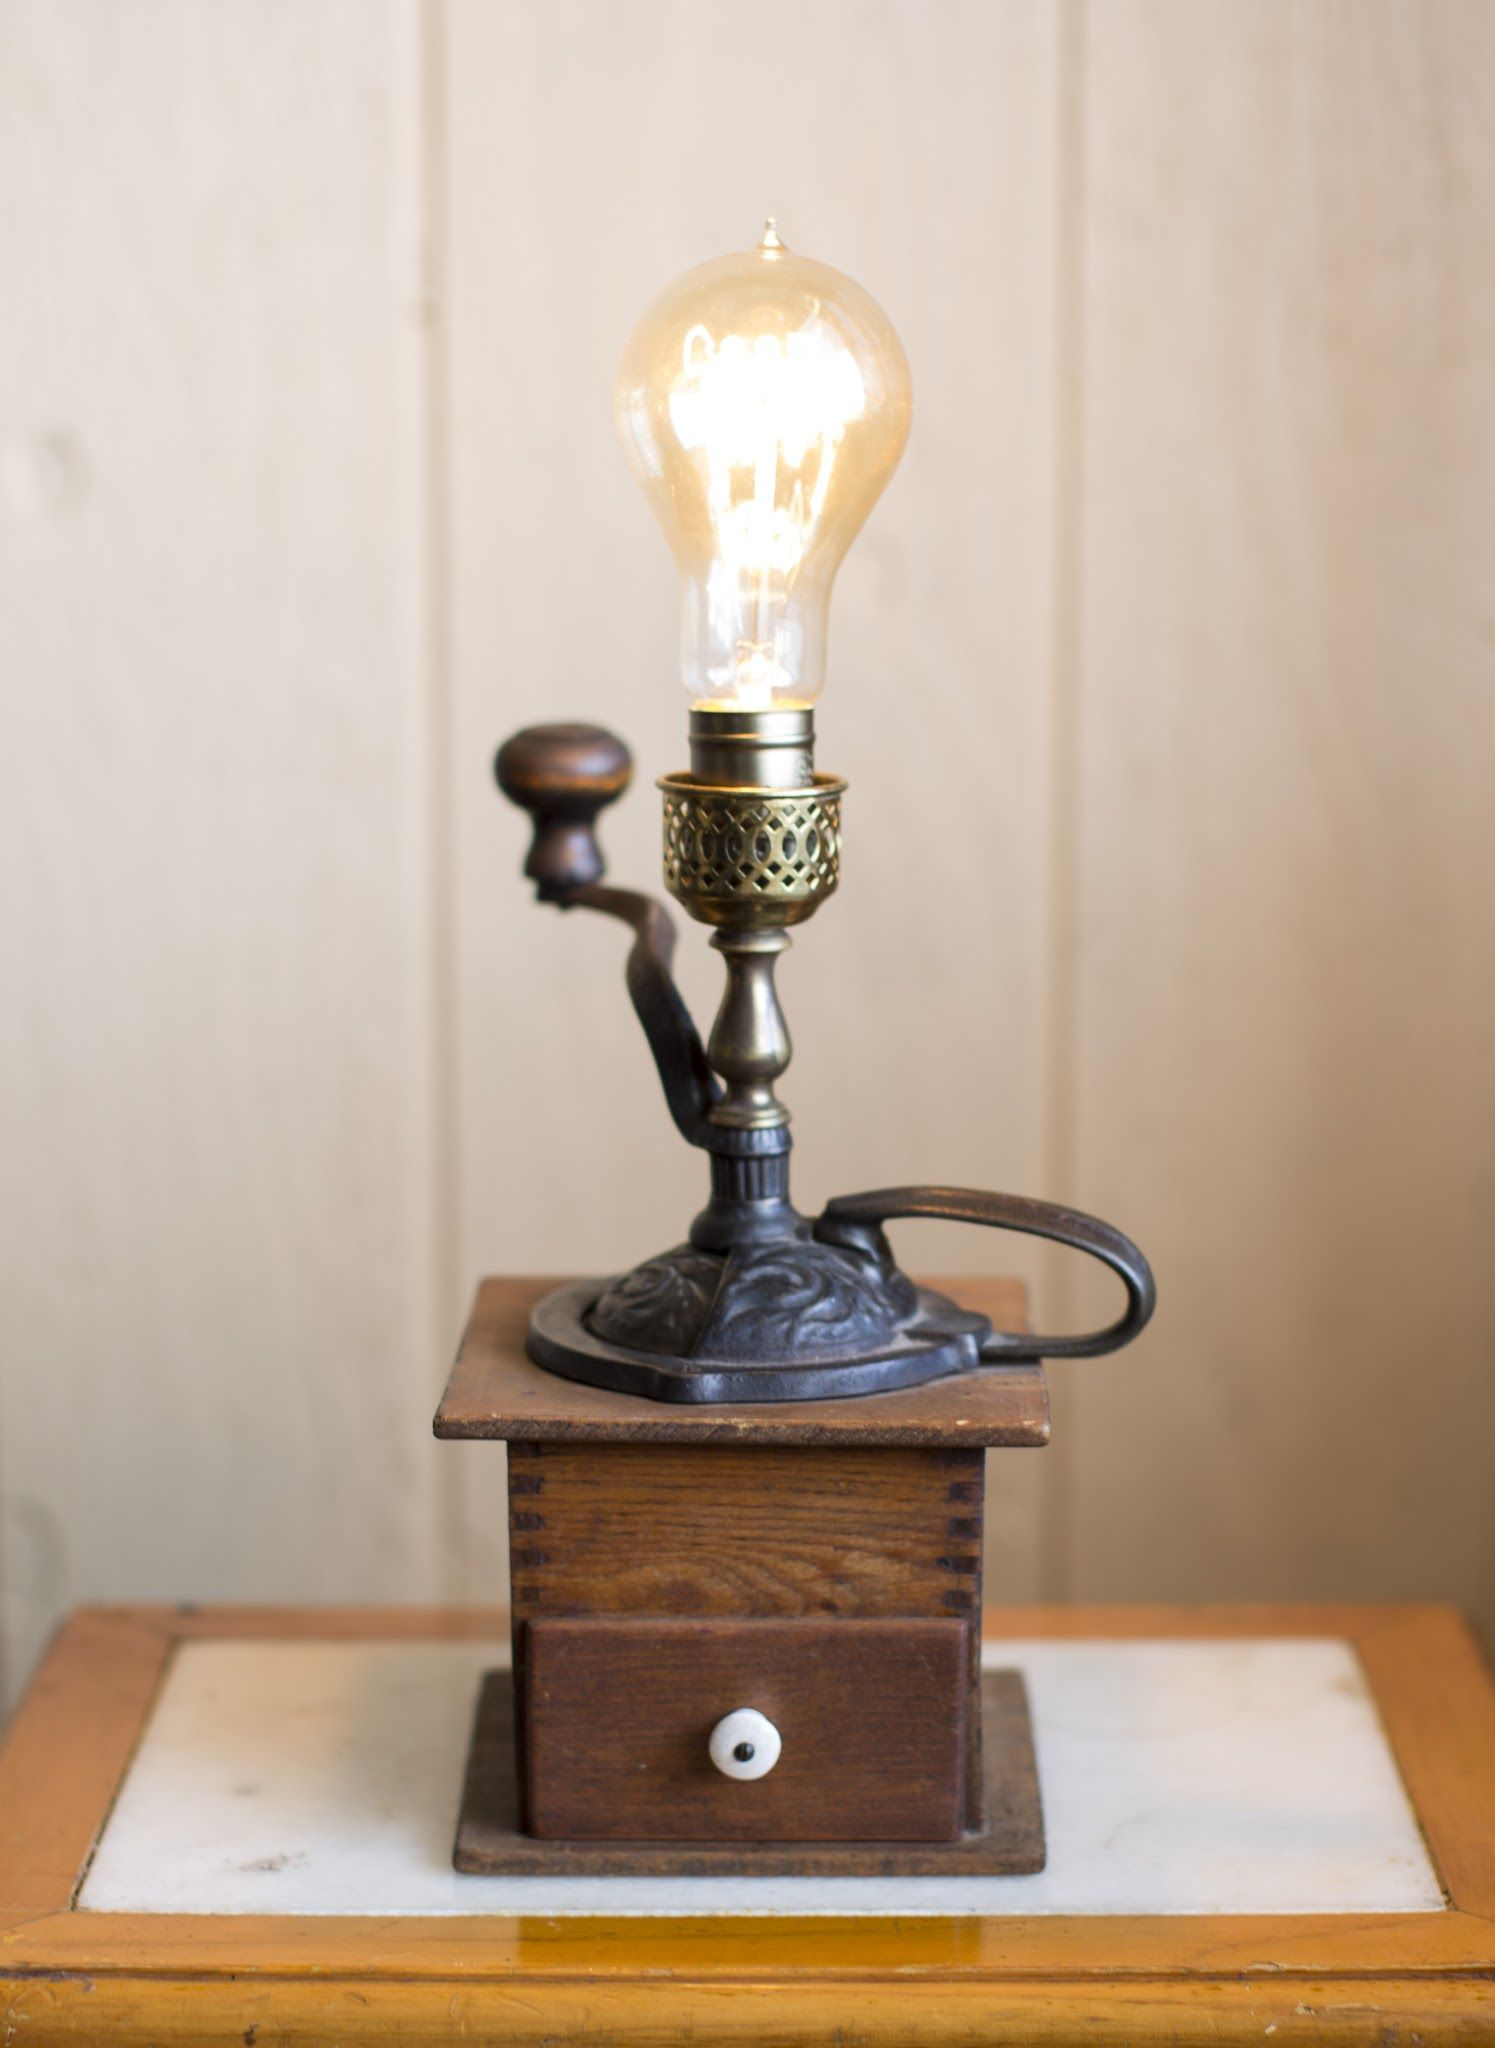 Stupendous Vintage Wood Coffee Grinder Lamp In 2019 Touch Lamp Dailytribune Chair Design For Home Dailytribuneorg